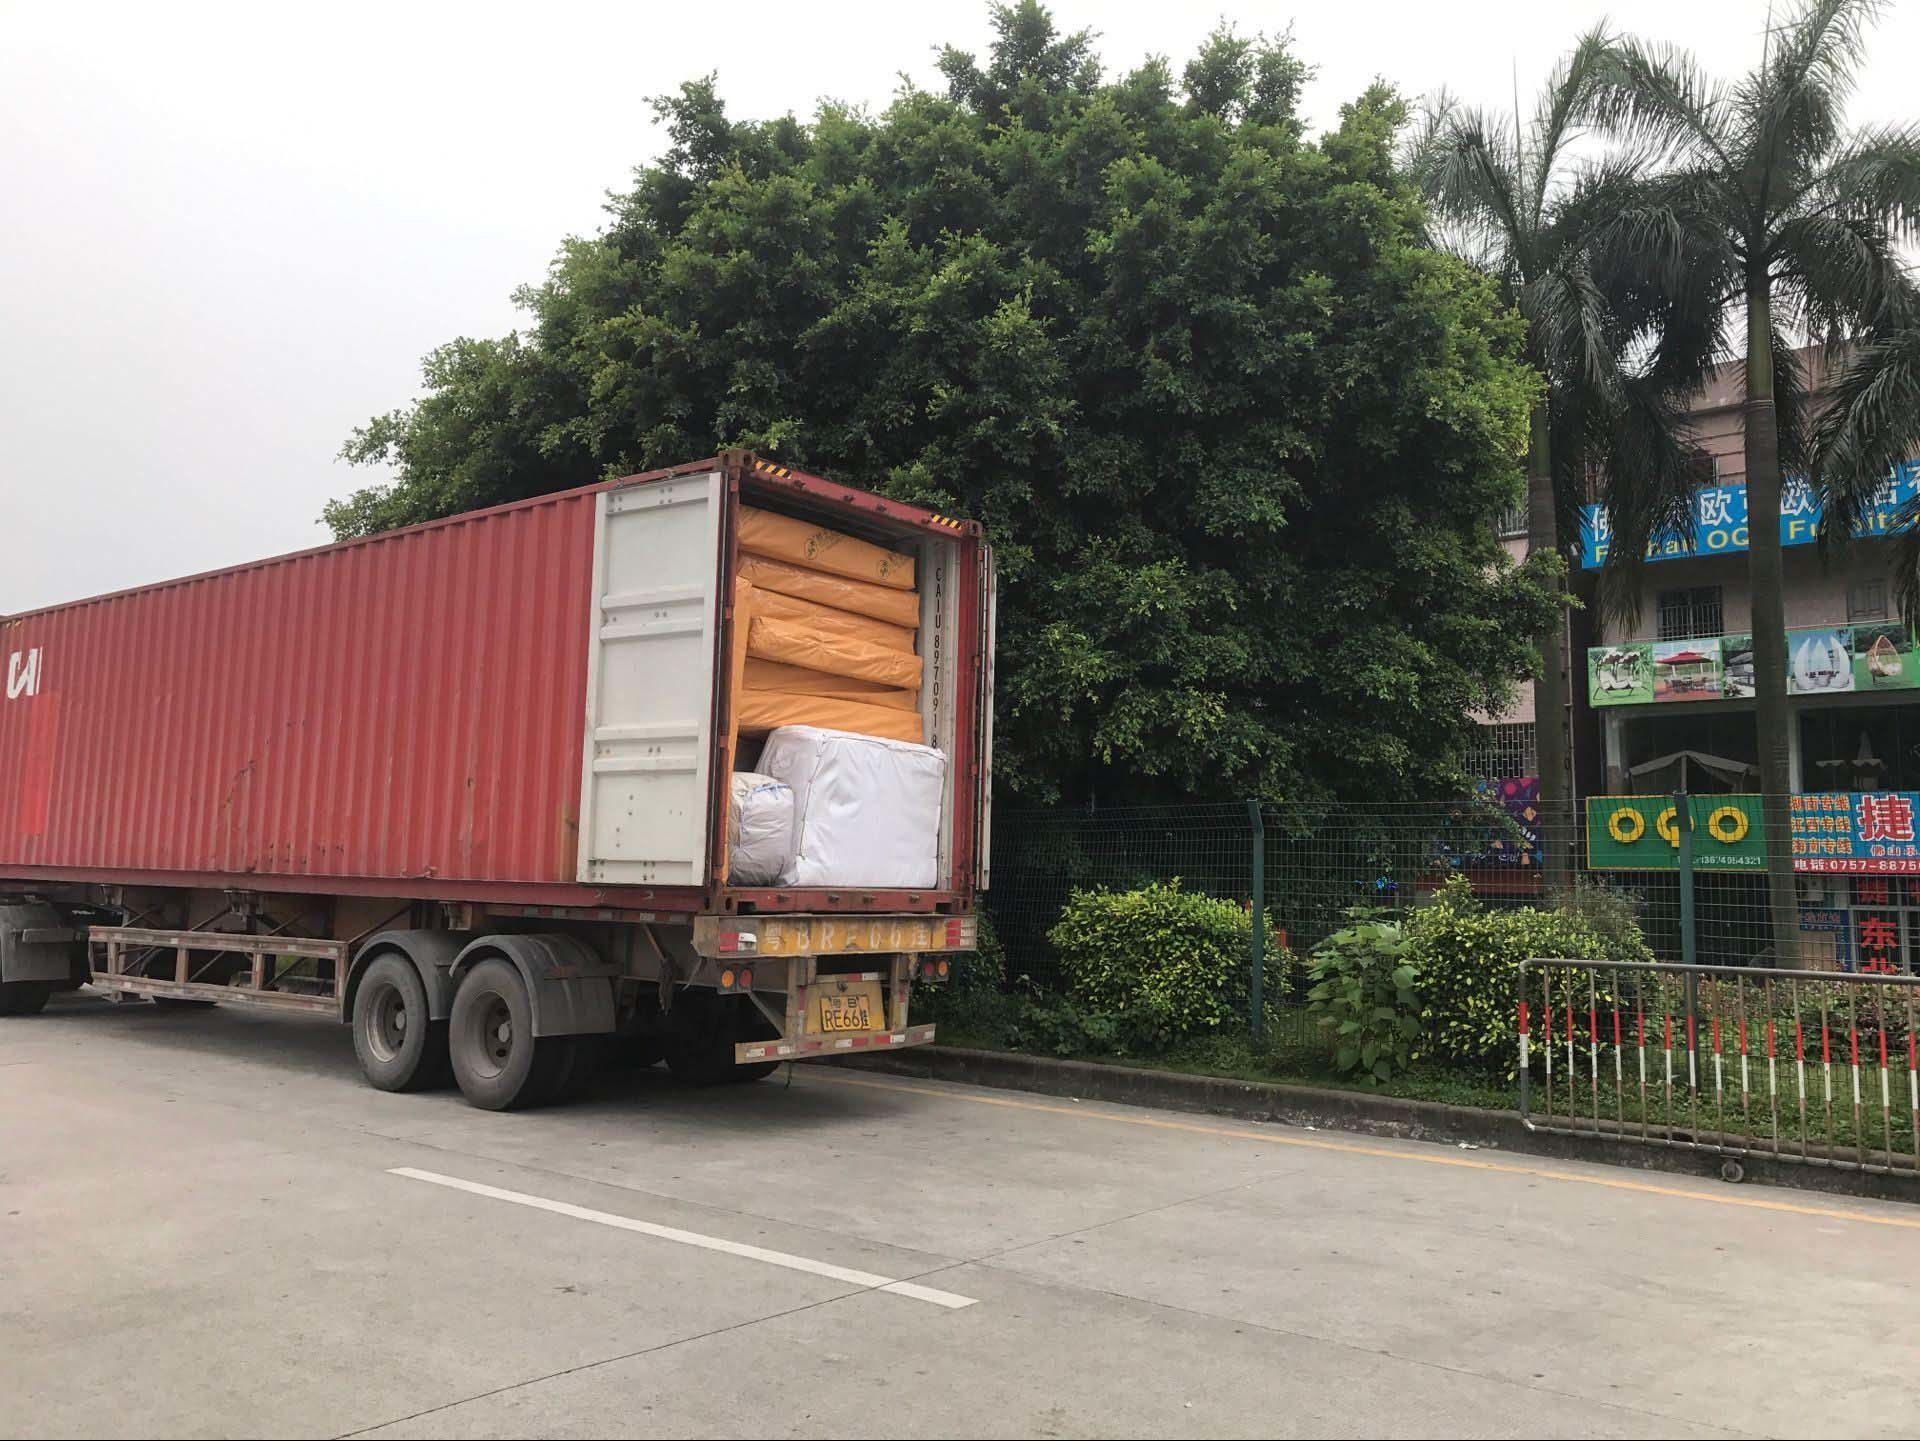 2017-5-19 Shipment India (Hotel engineering)